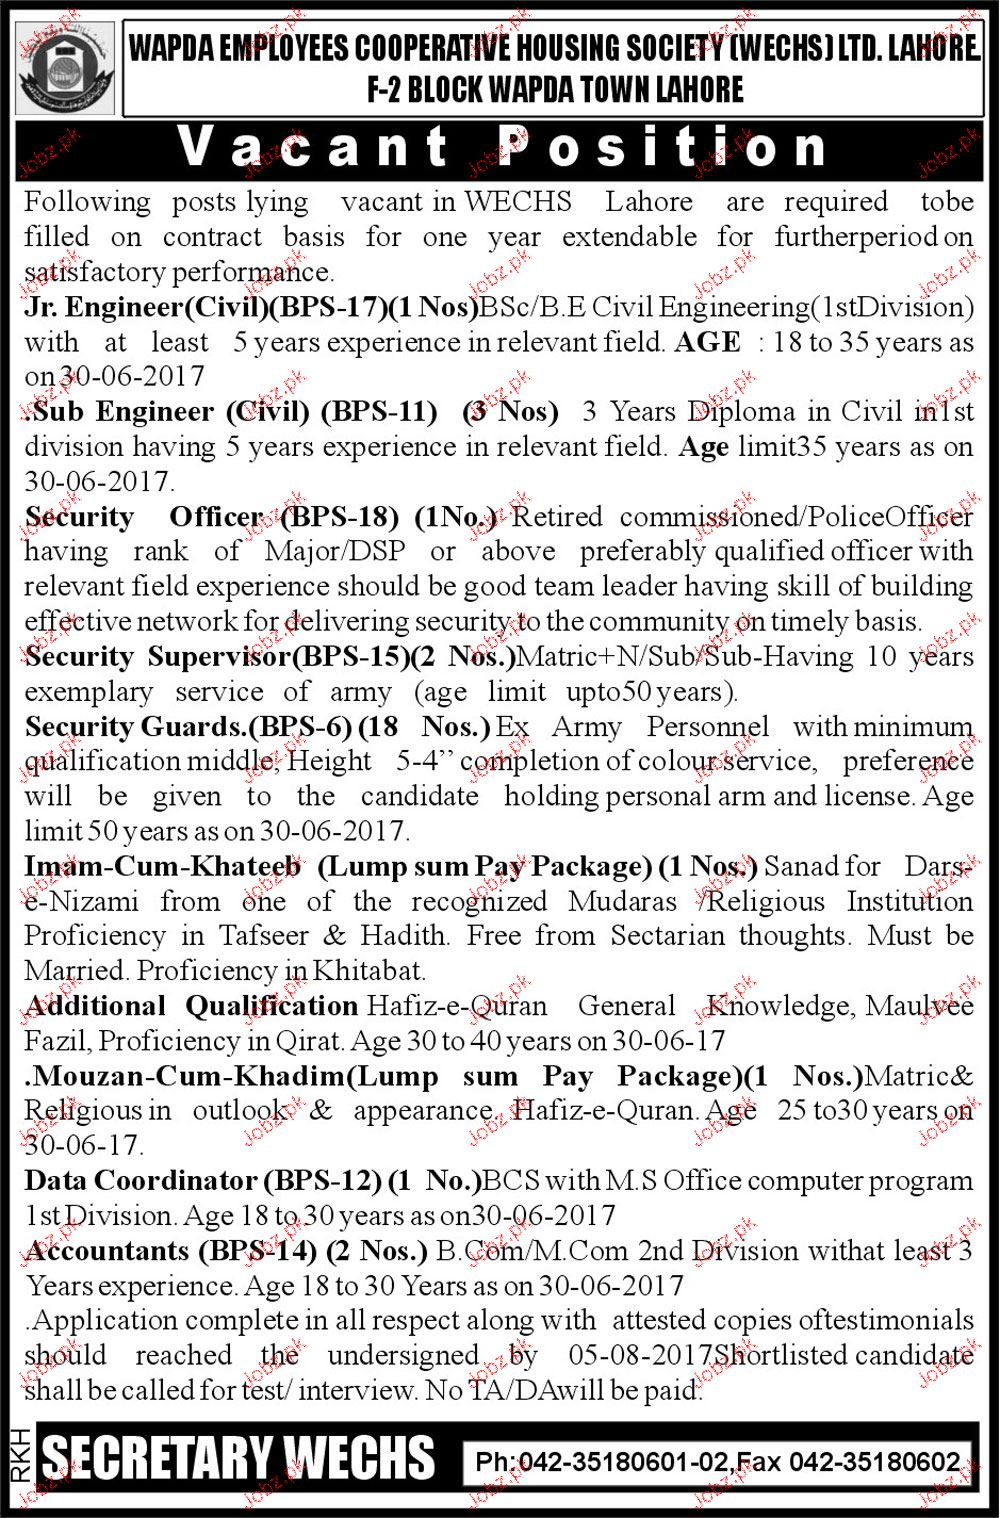 WAPDA Employees Cooperative Housing Society Jobs